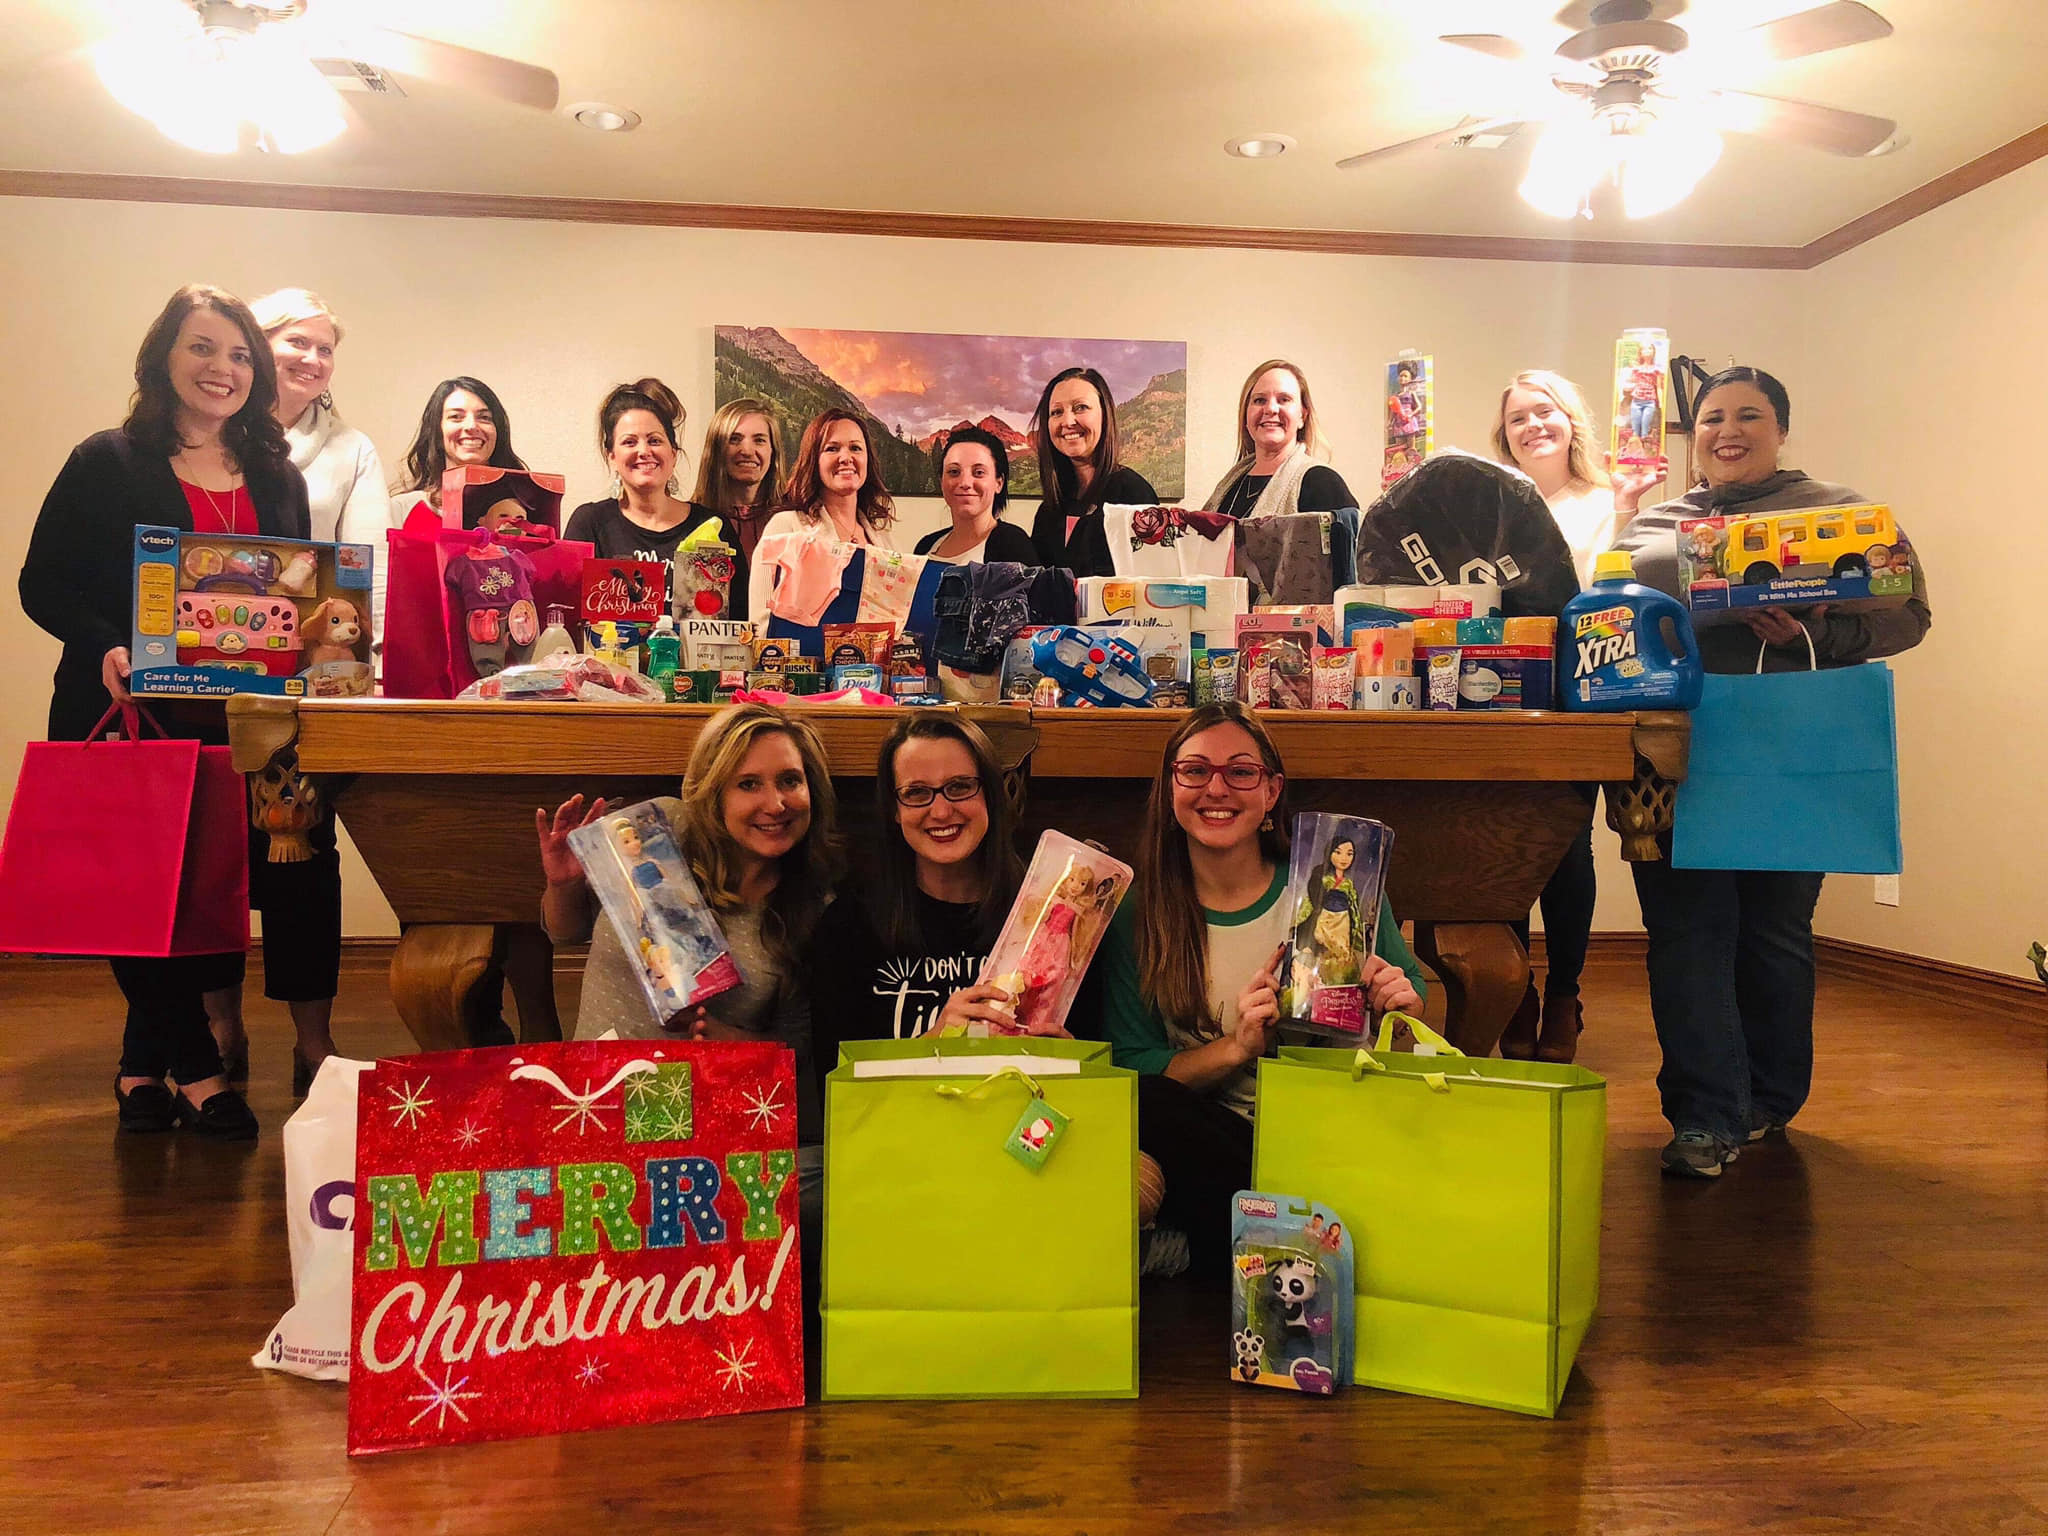 Local family Cmas gifts & food donation